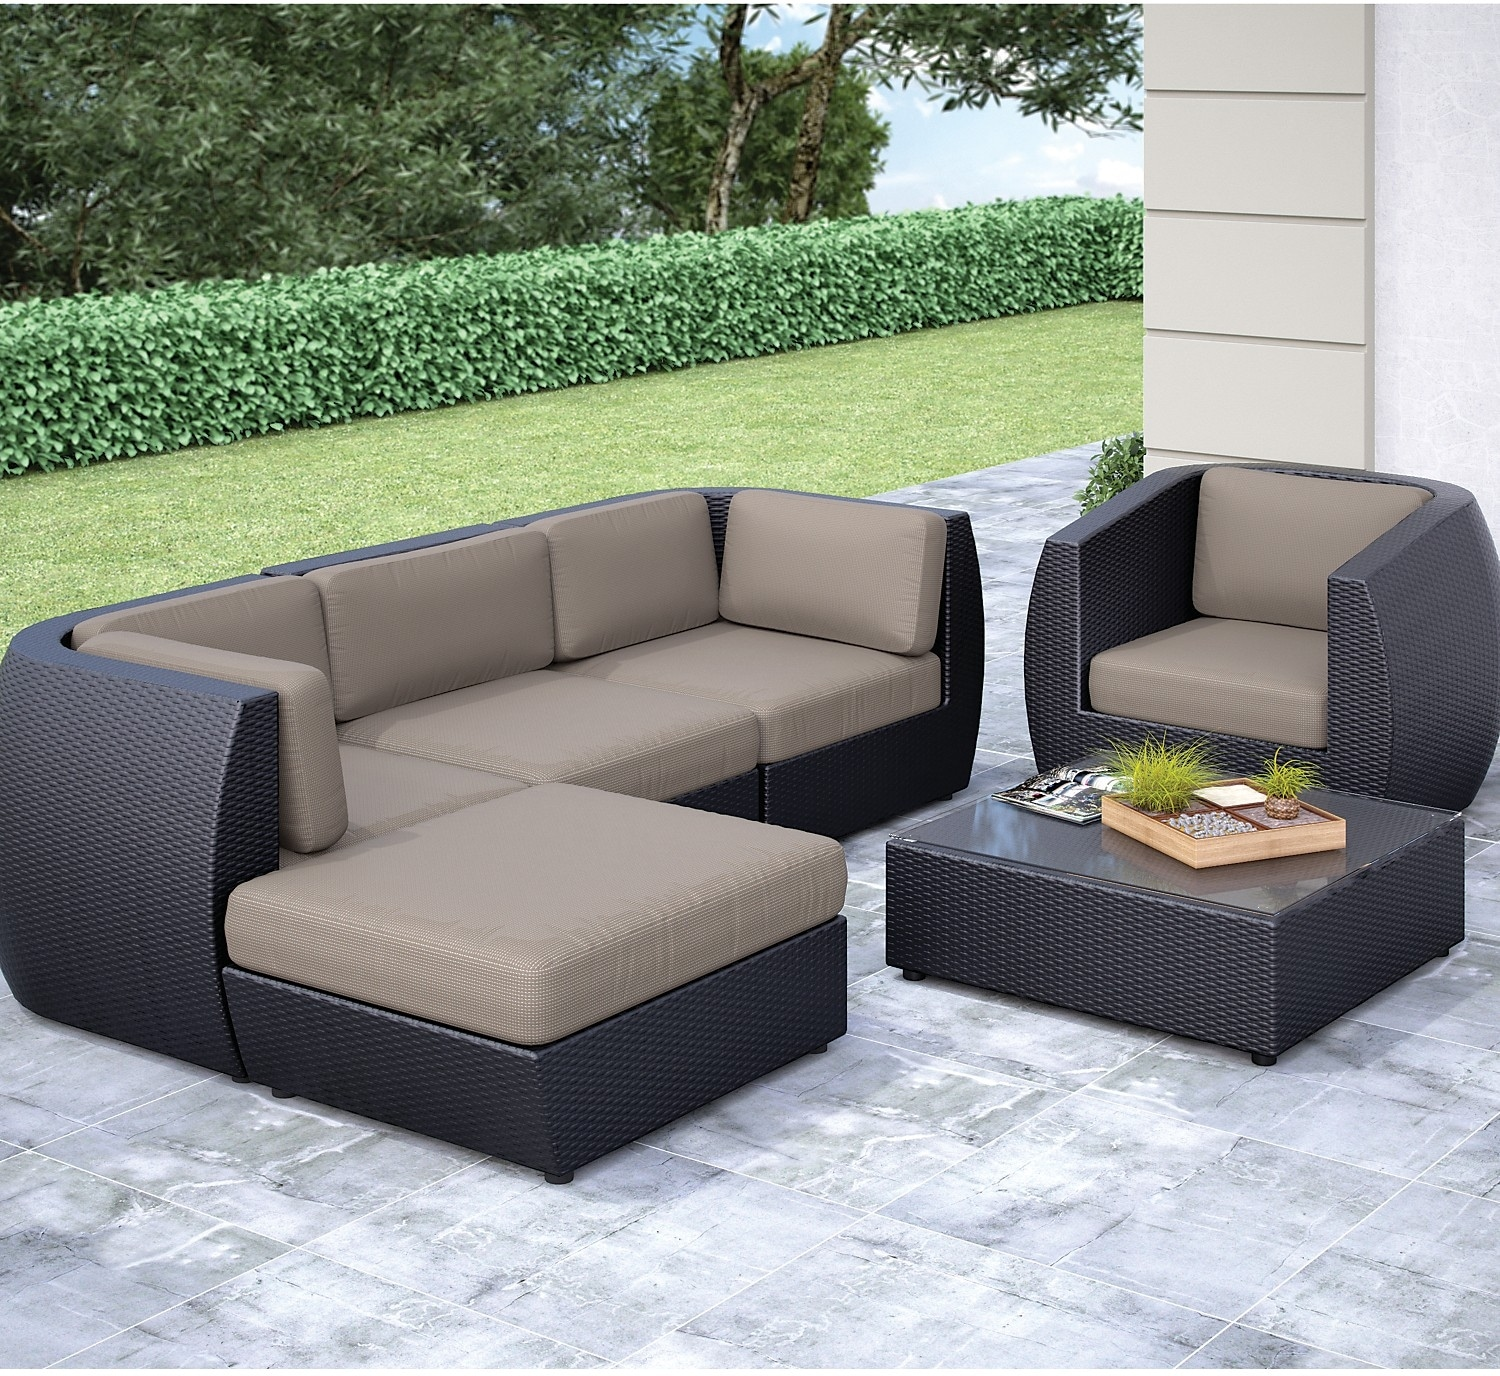 Seattle Conversation Patio Set - Sectional